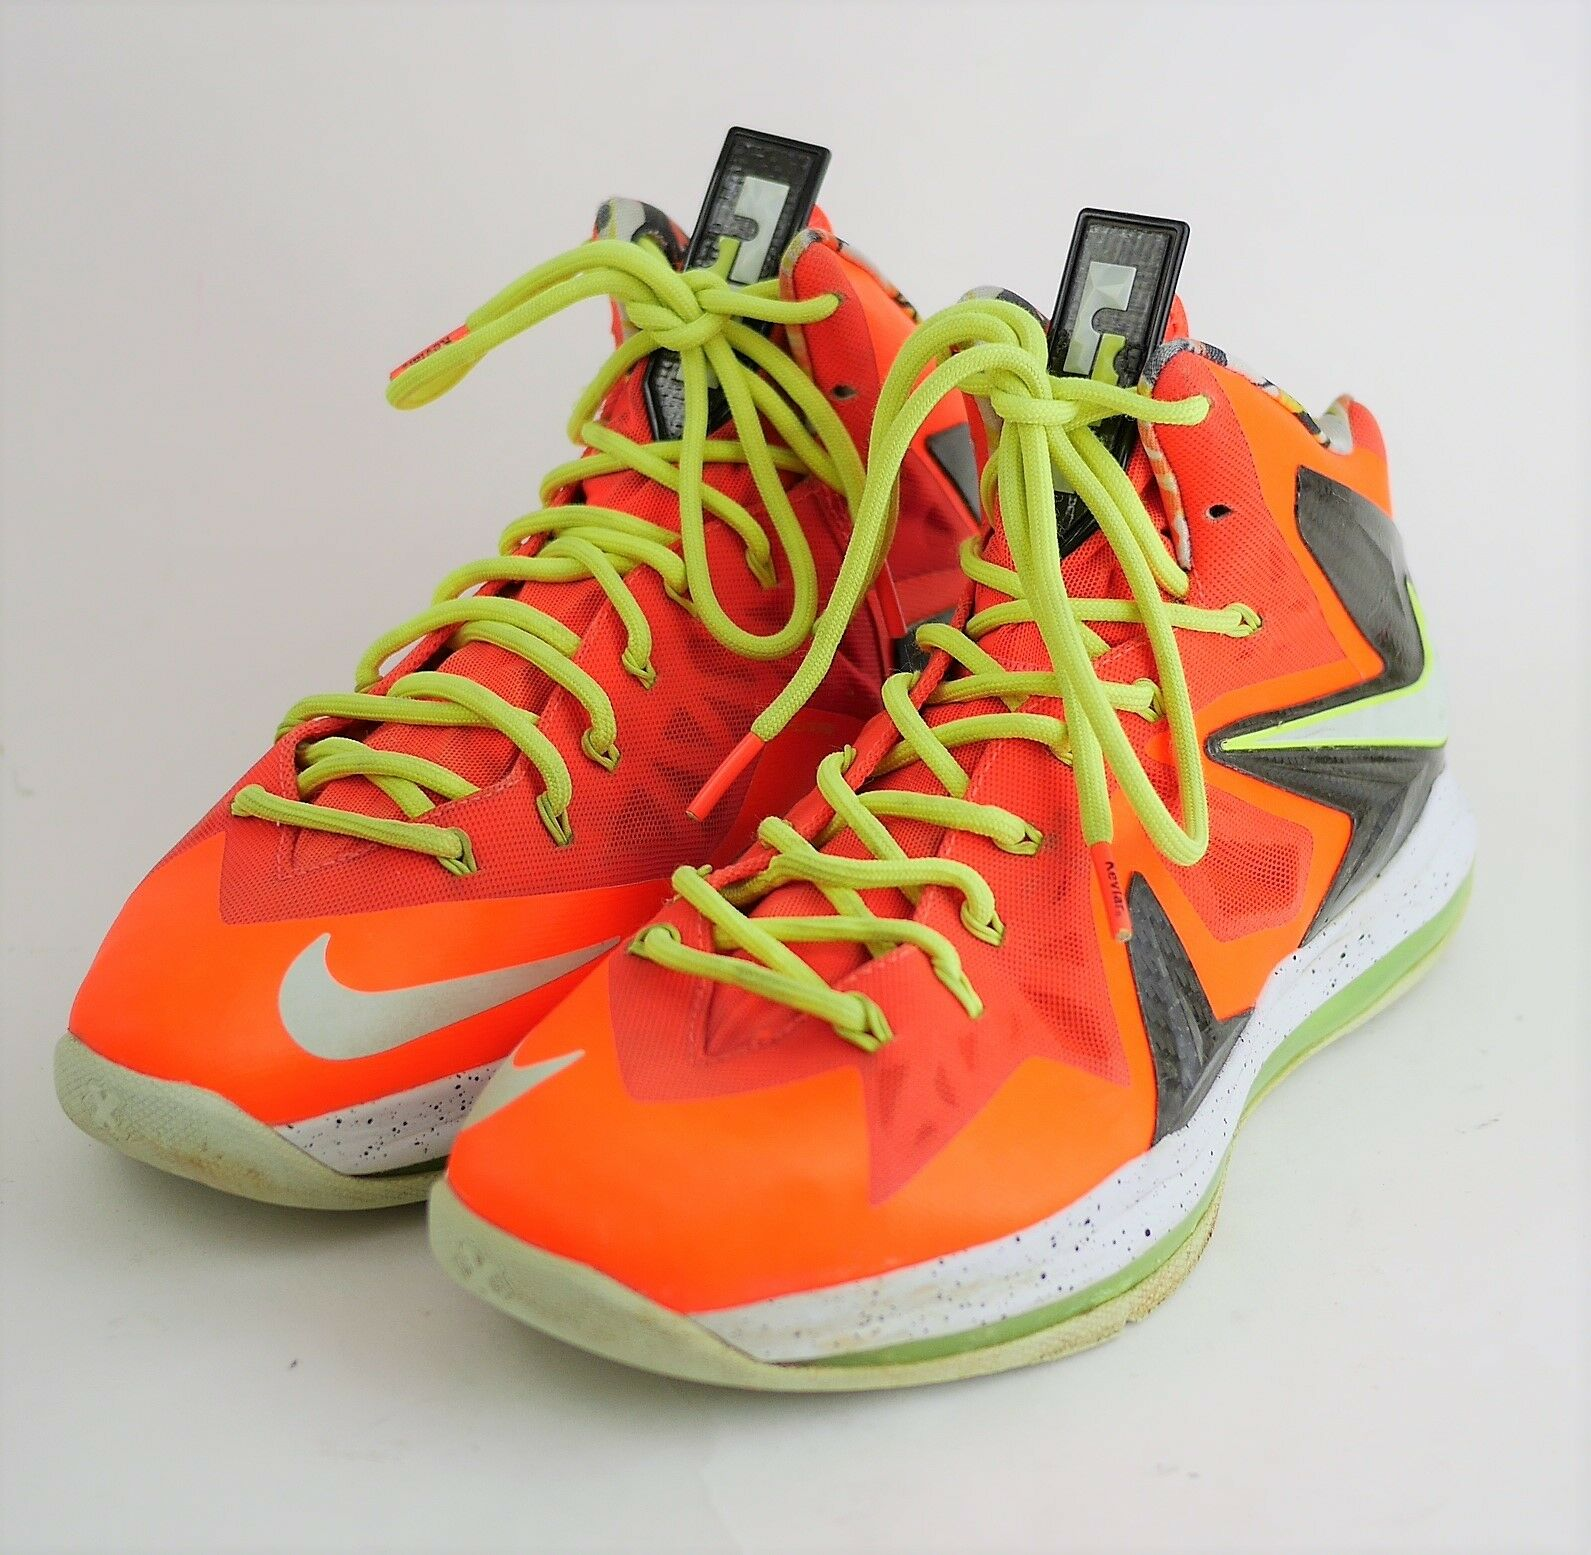 NIKE LEBRON JAMES FLYWIRE Mns 9.5 NEON orange BASKETBALL HIGH TOP SNEAKERS SHOES